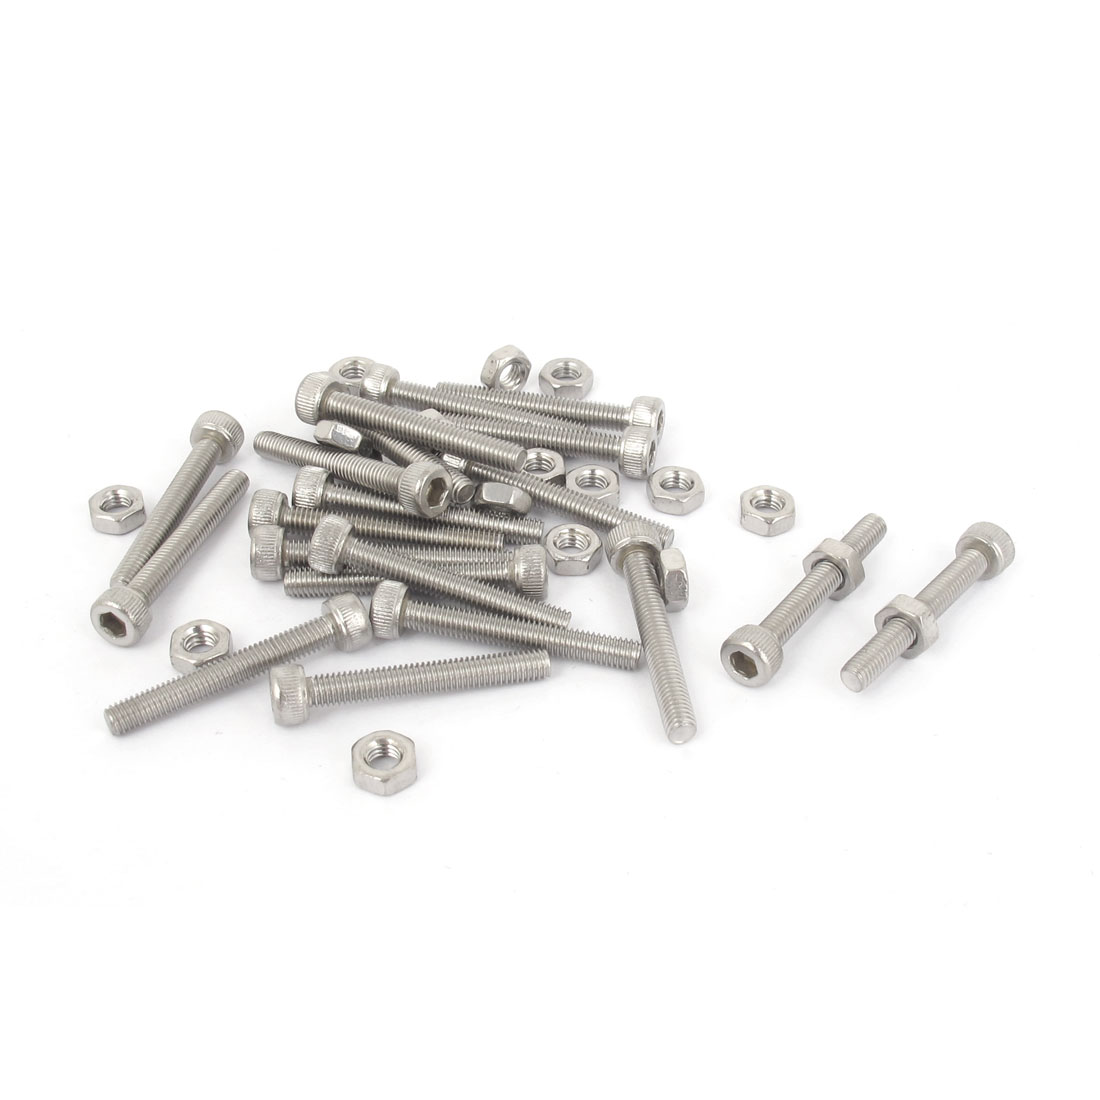 M3x22mm Stainless Steel Hex Socket Head Knurled Cap Screws Bolts Nut Set 20Pcs